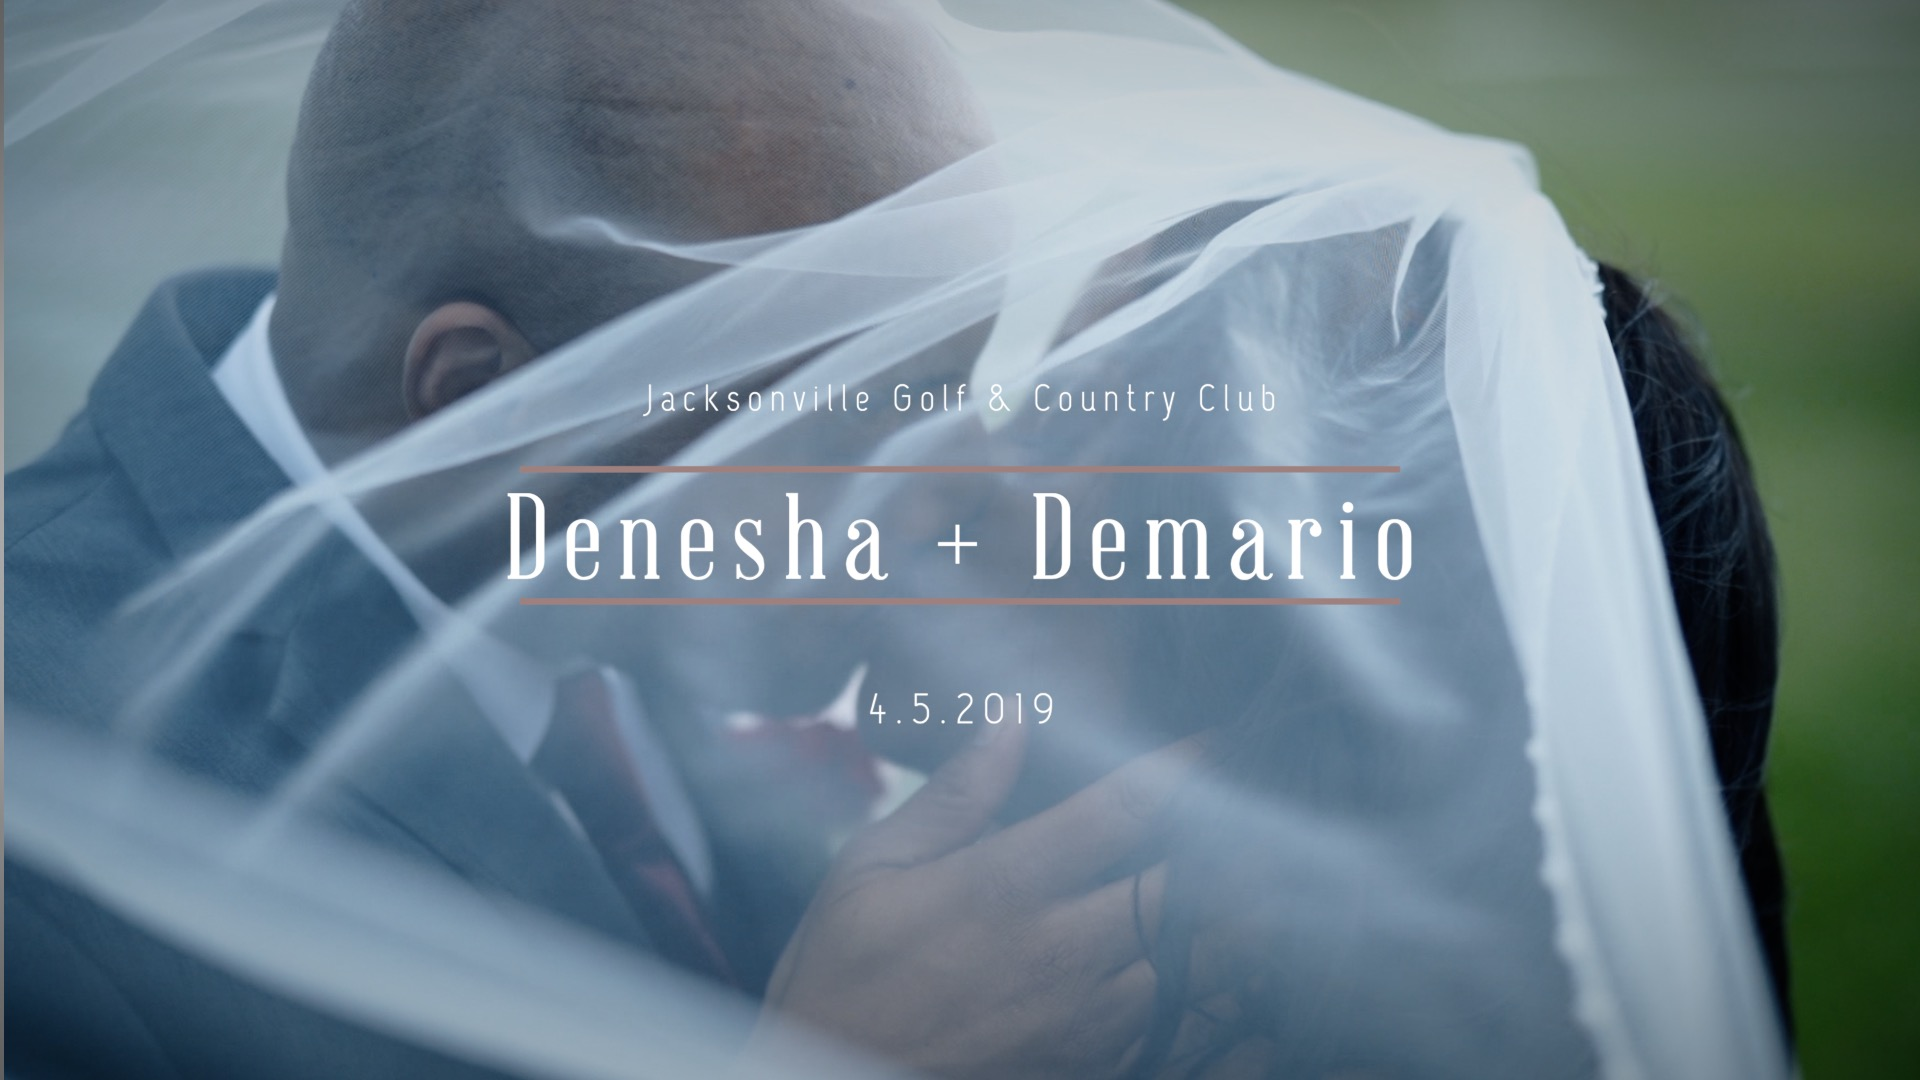 Denesha + Demario | Jacksonville, Florida | jacksonville Golf and Country Club